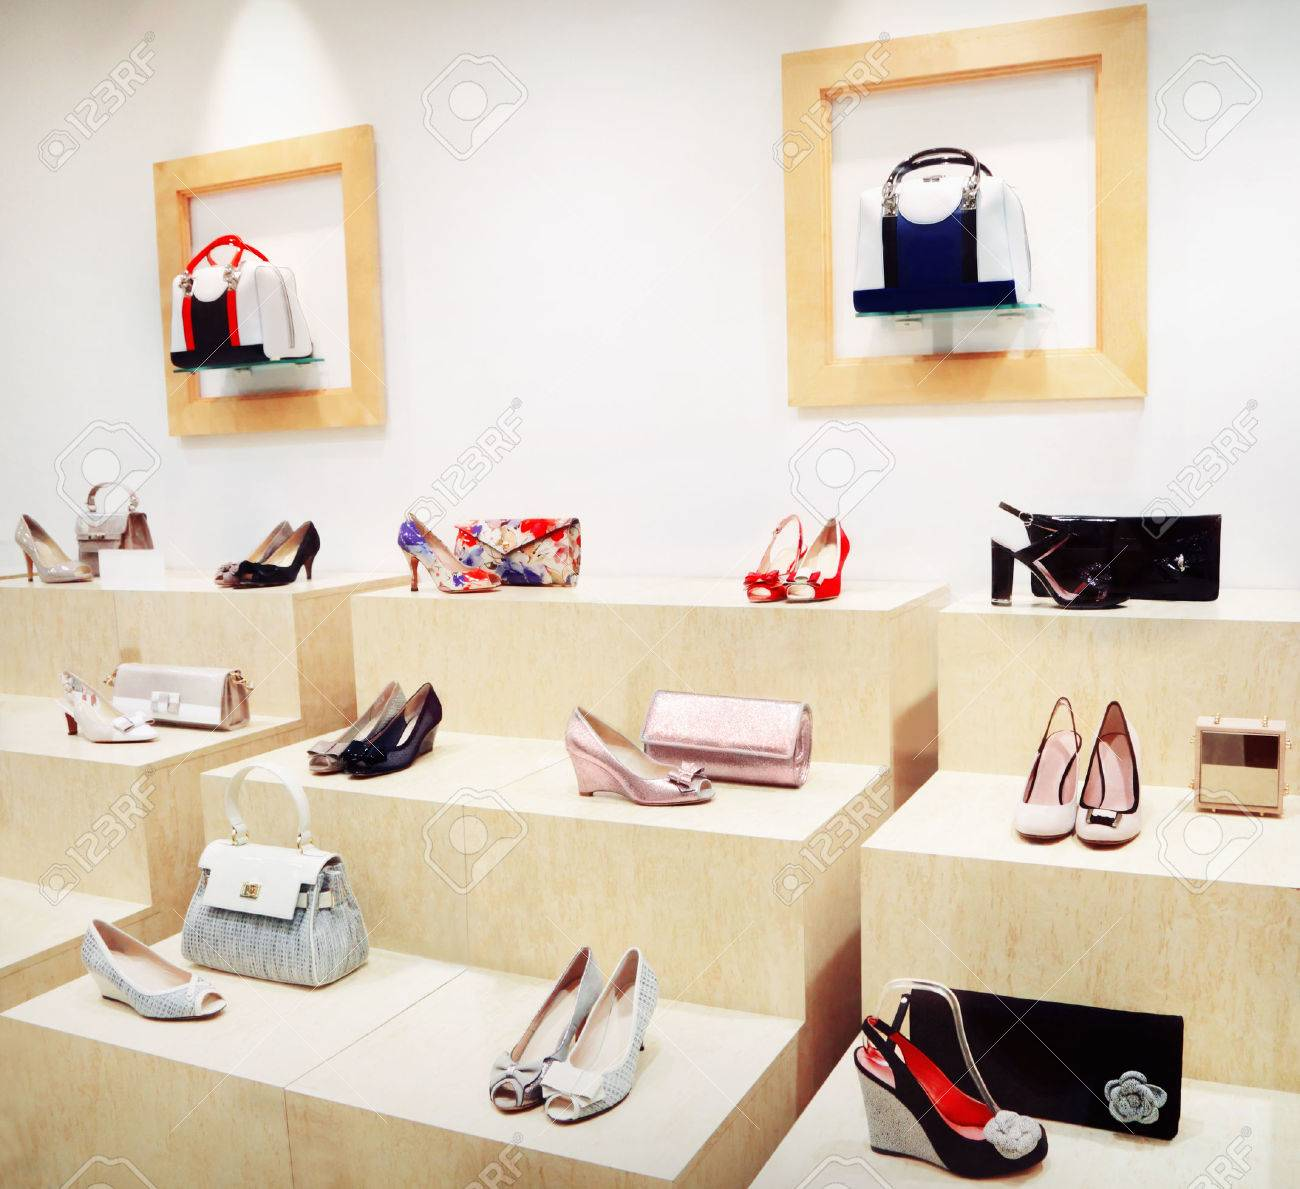 Shop window with bags and shoes - 49104017